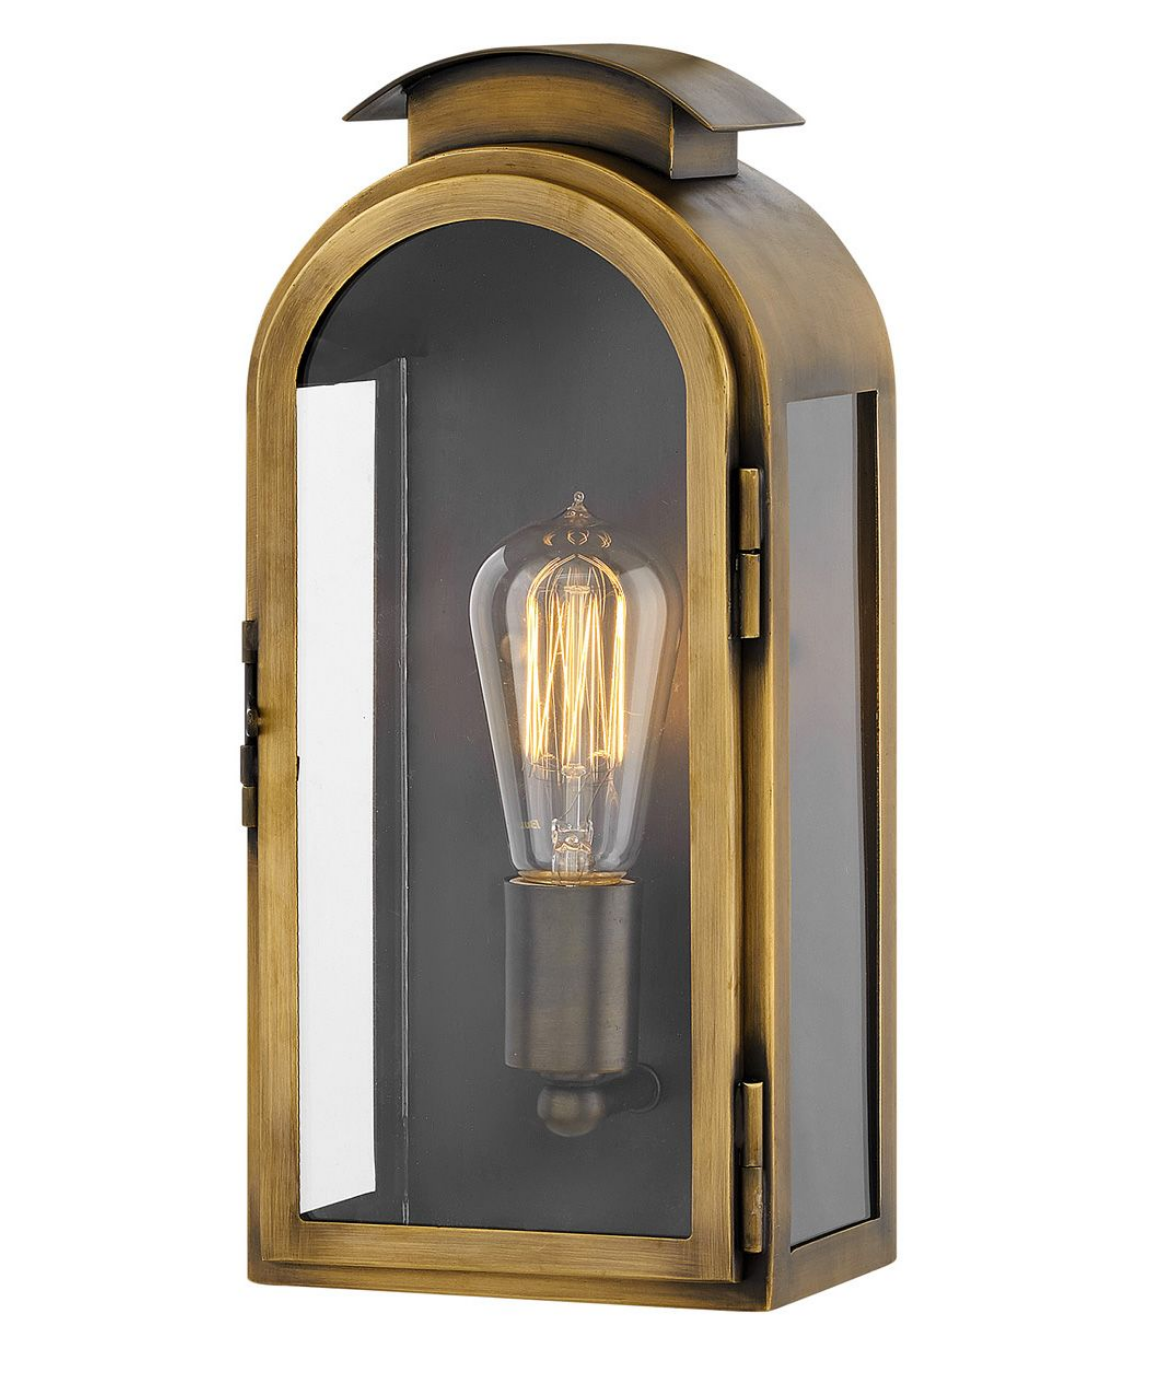 Outdoor Rowley Wall Lantern 2520, 2524, 2525